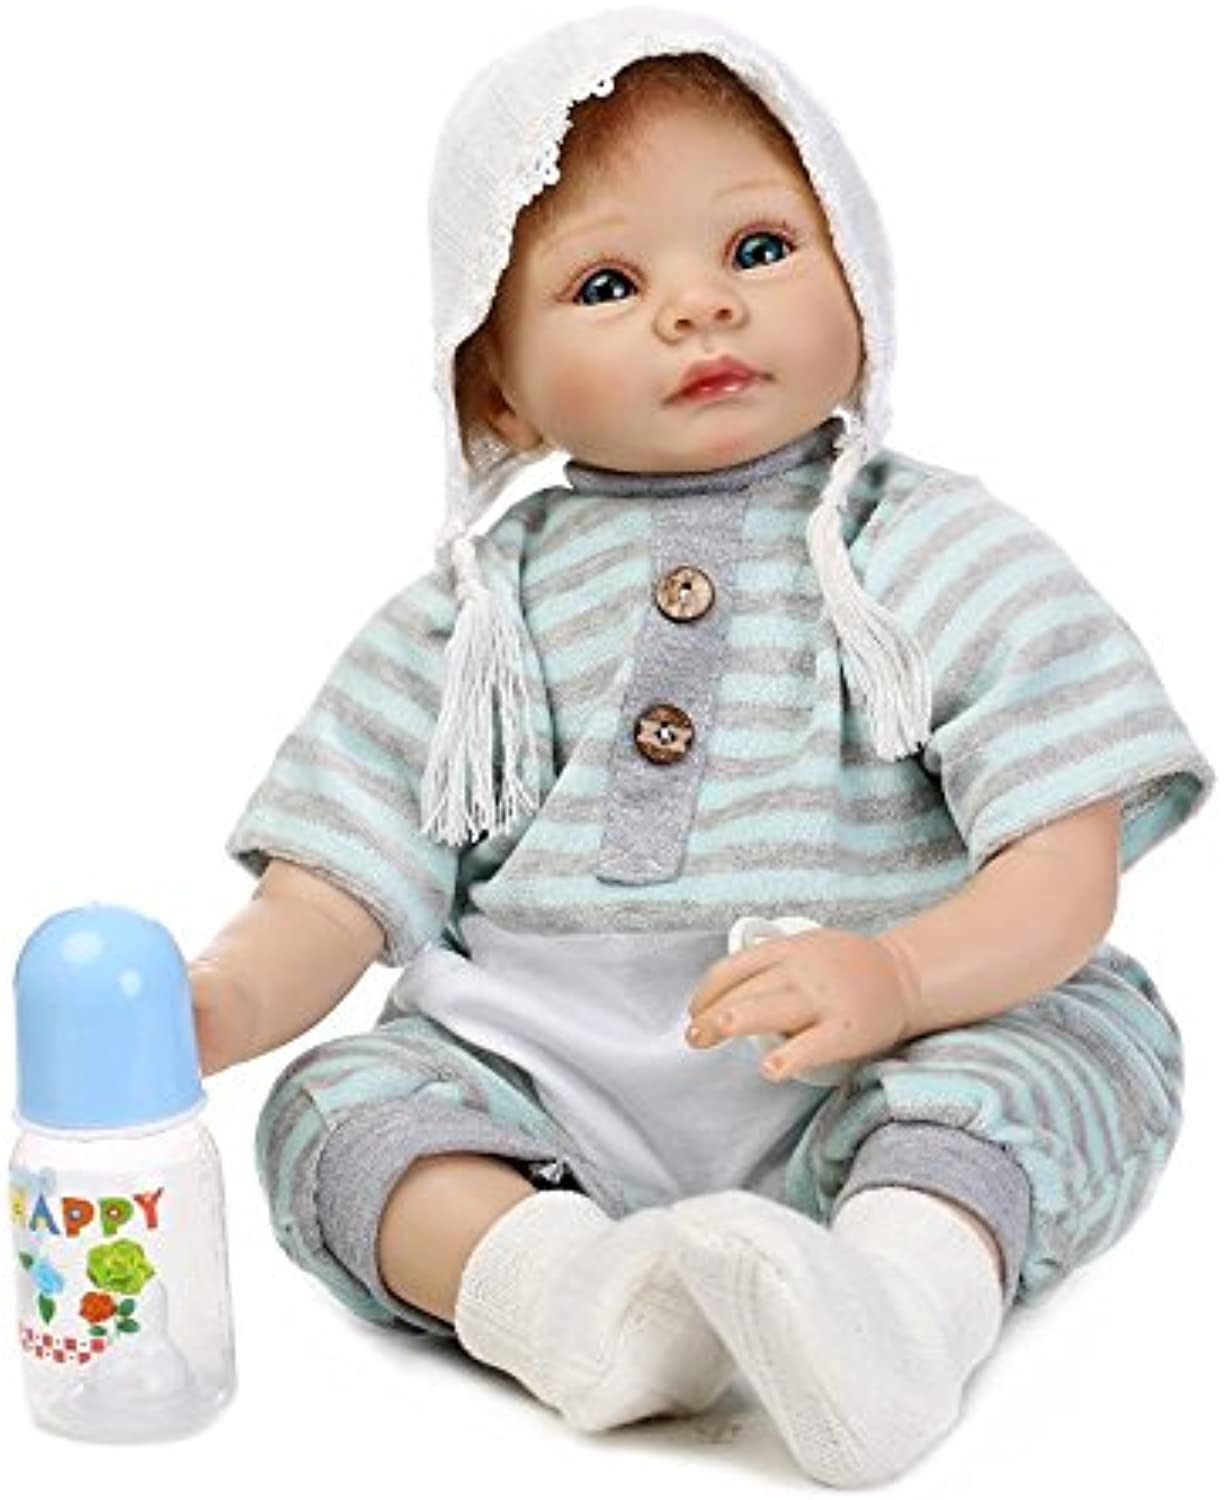 NPK Collection Reborn Baby Doll Soft Silicone 22inch 55cm Magnetic Mouth Realistic Boy Girl Collectible Toy Kids Grwoth Partner